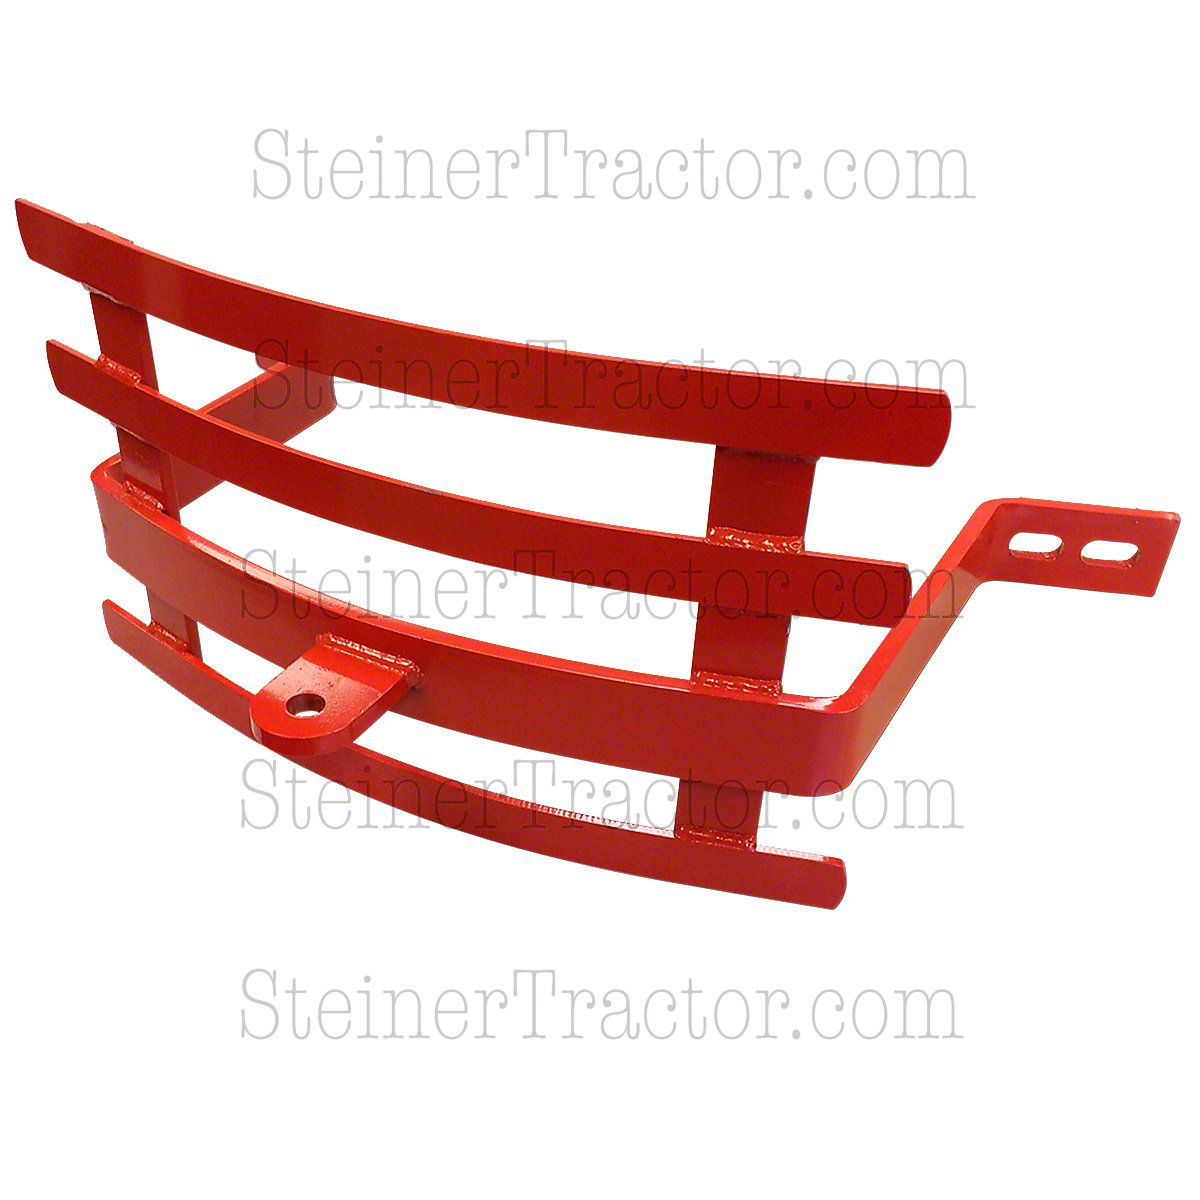 Heavy Duty Ford Front Bumper Fits 8n 9n 2n Naa 600 800 Tractor Electrical Wiring Diagram Welding Projects